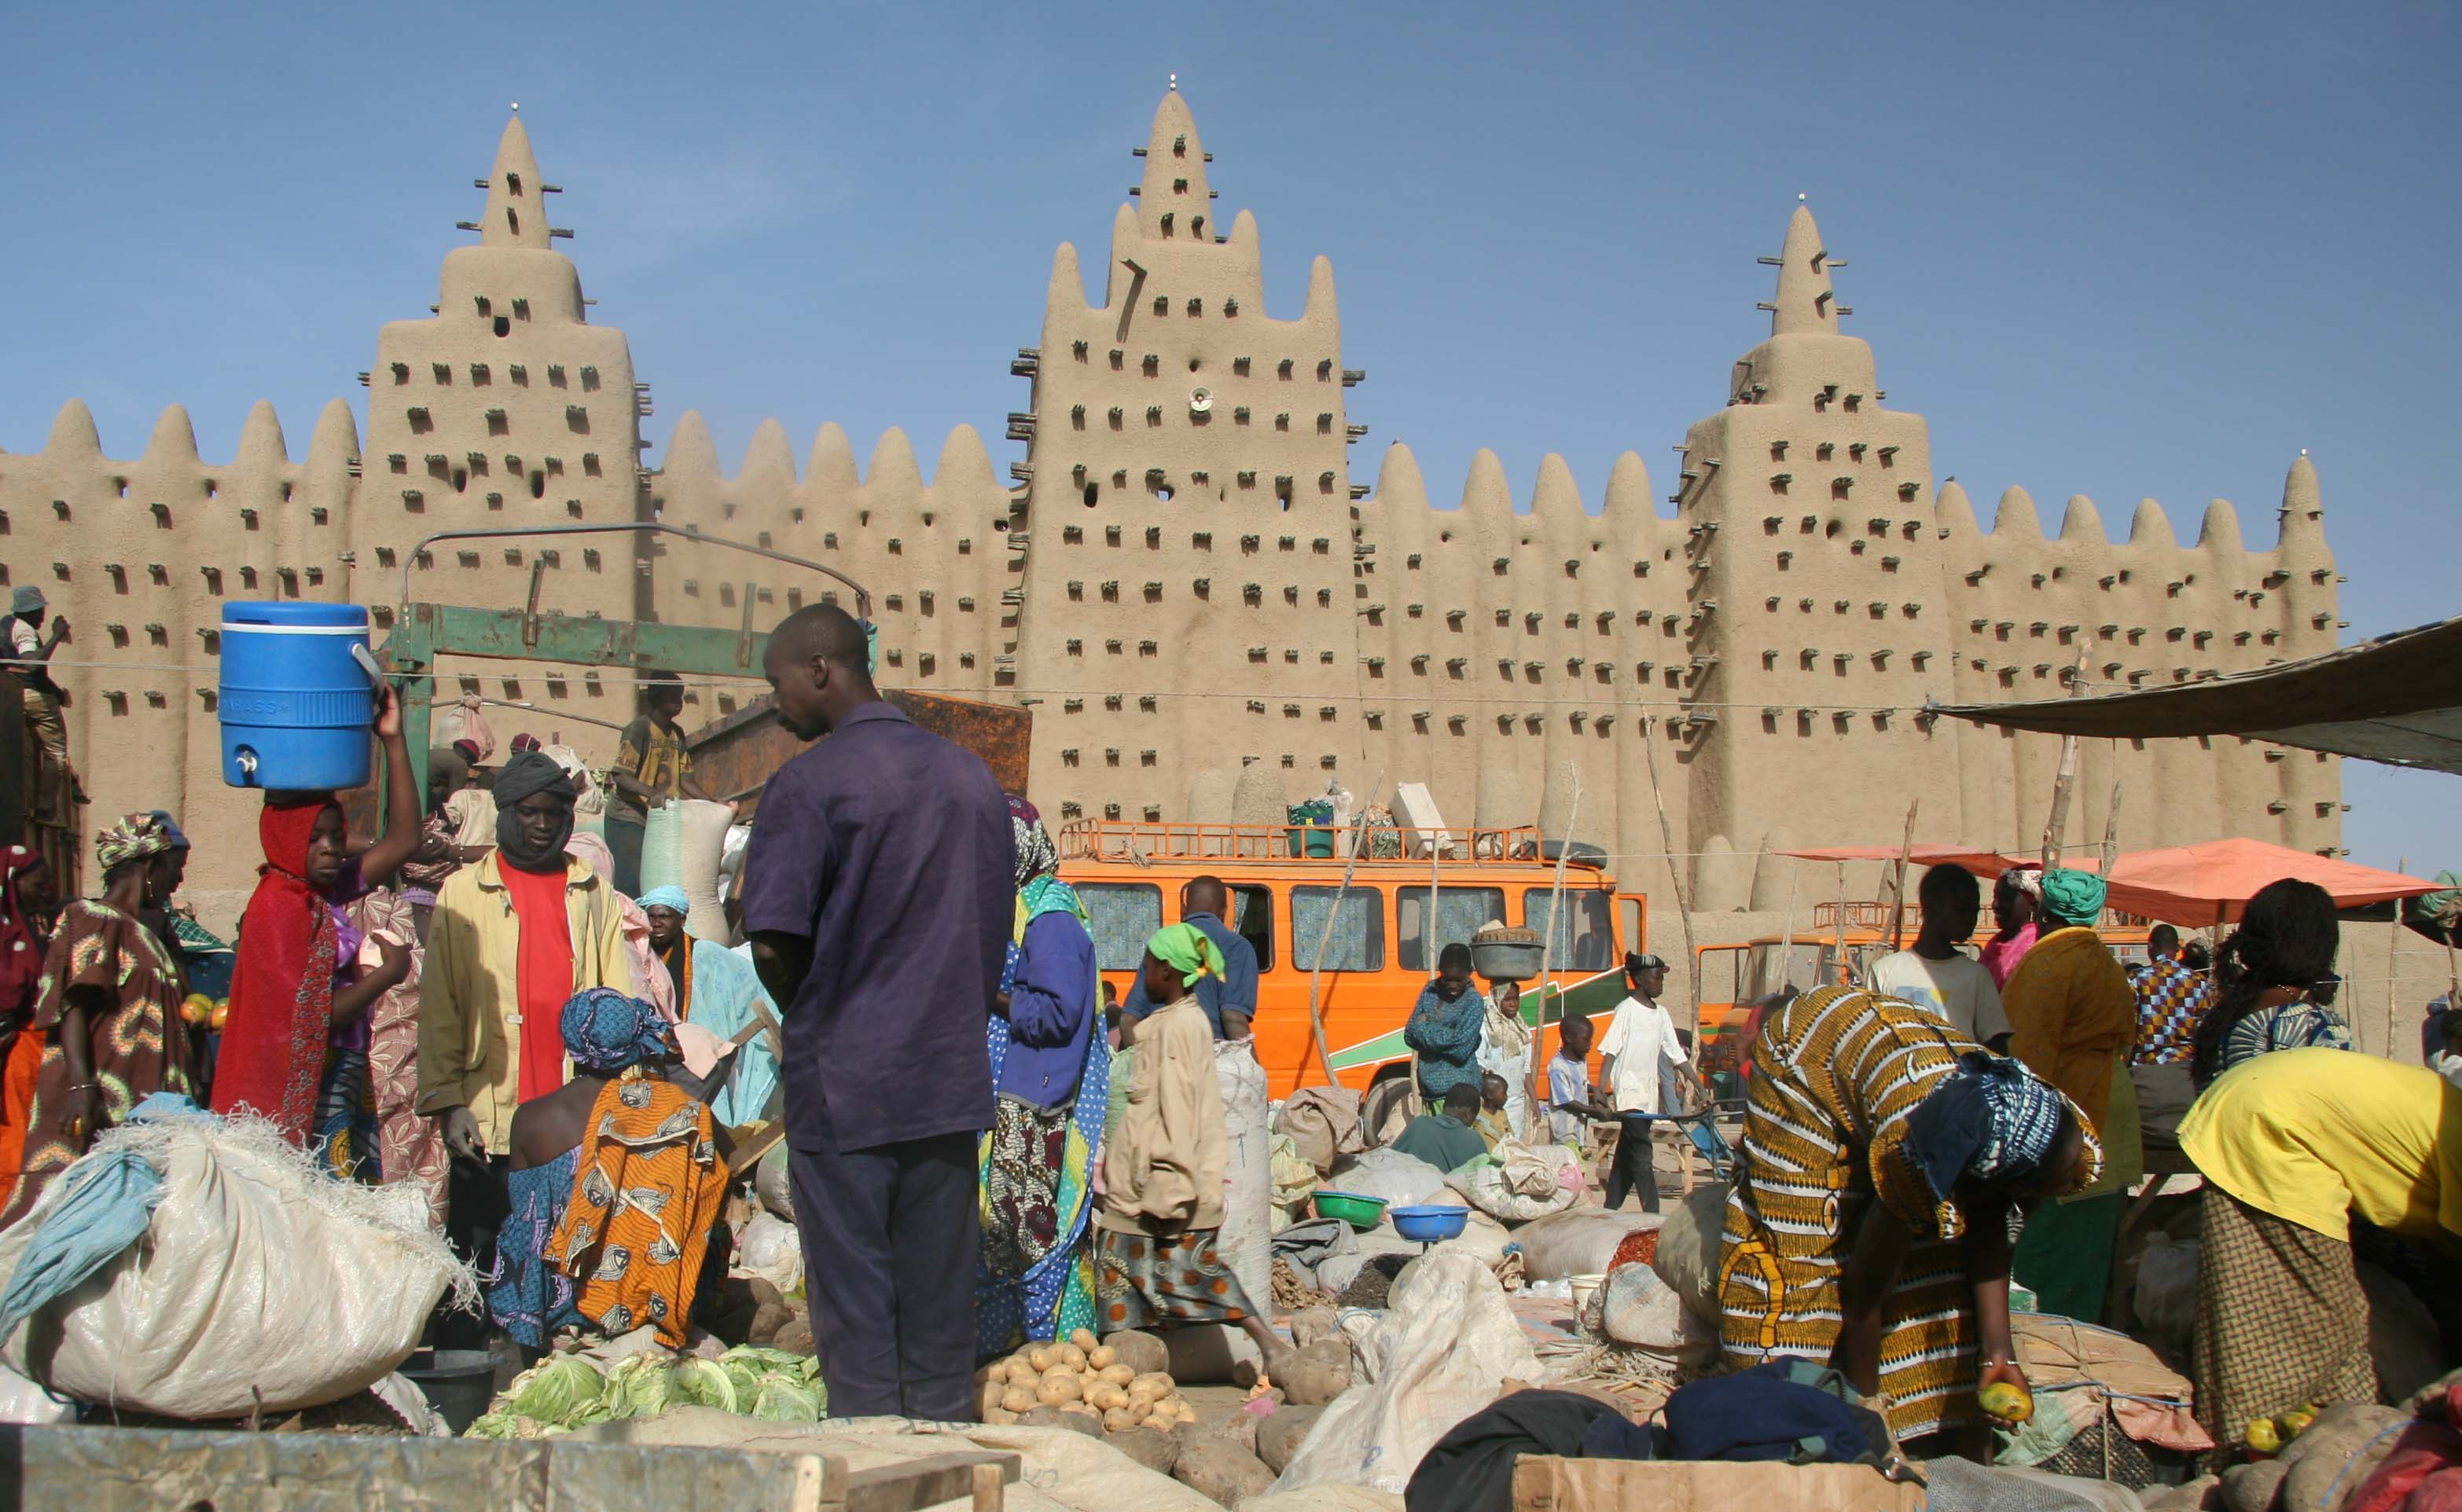 UN expert urges response to deteriorating human rights situation in Mali